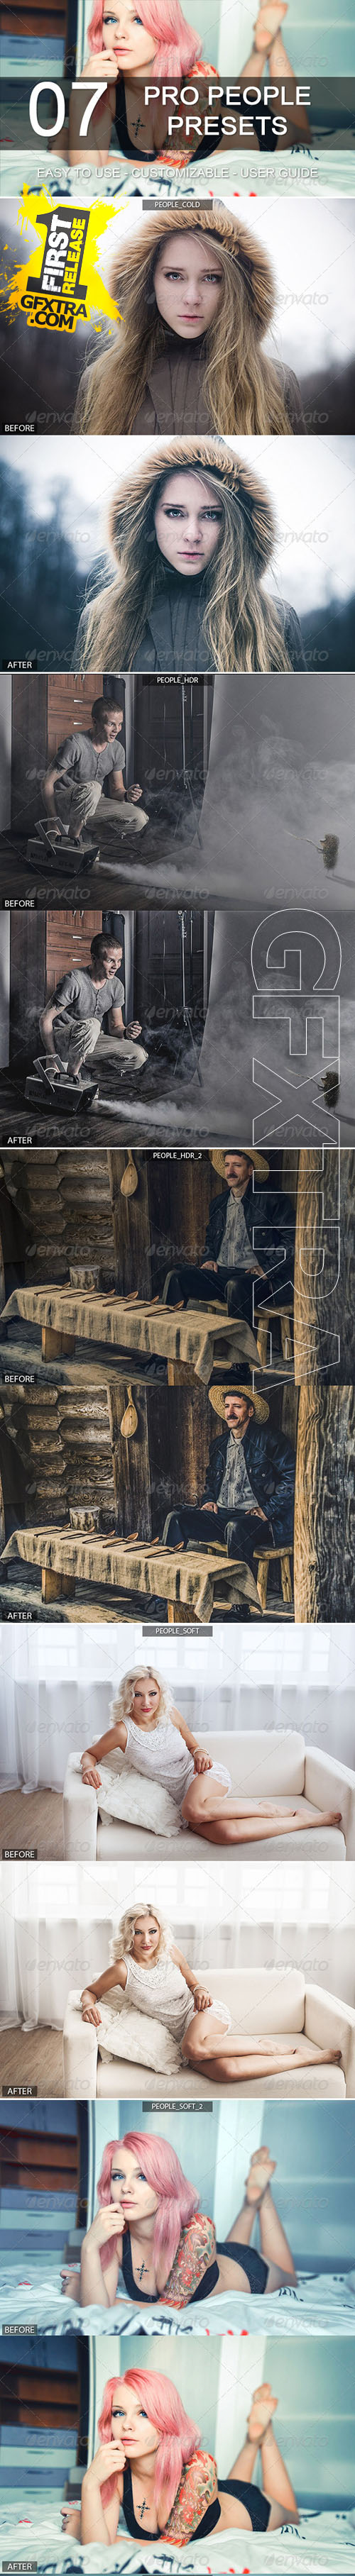 GraphicRiver - 7 Pro People Presets 6285711